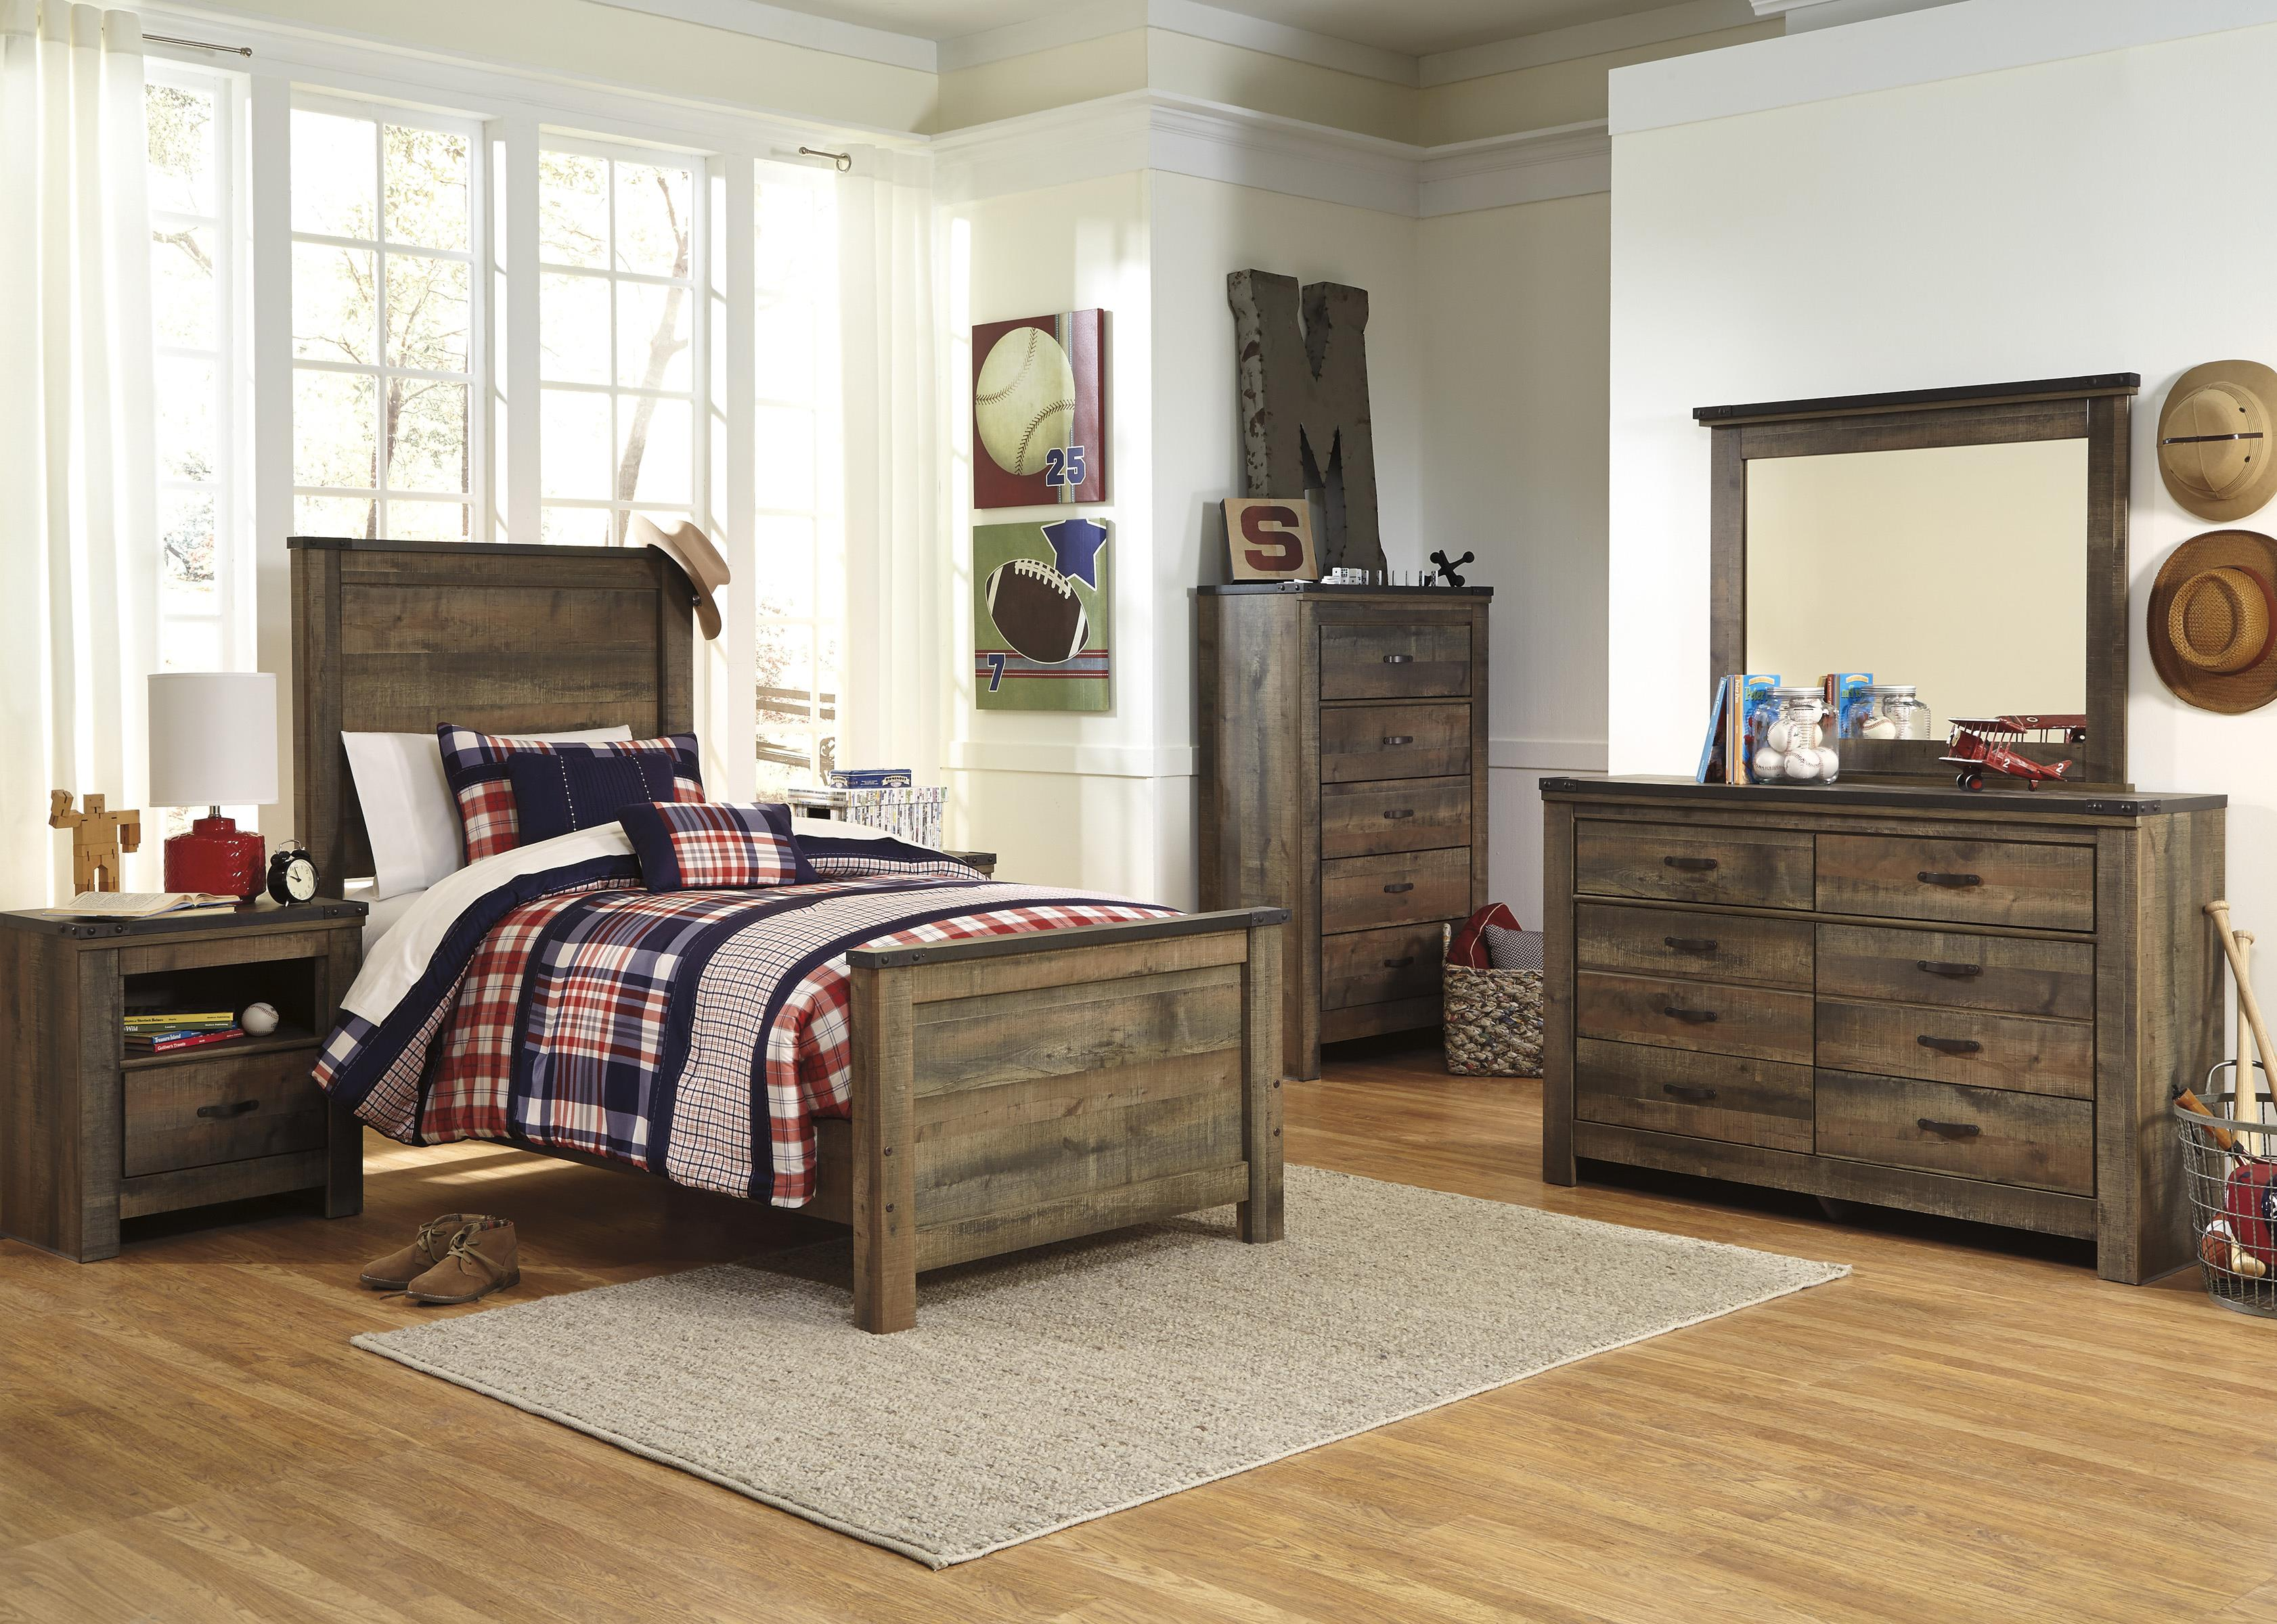 ashley trinell twin bedroom group royal furniture bedroom groups